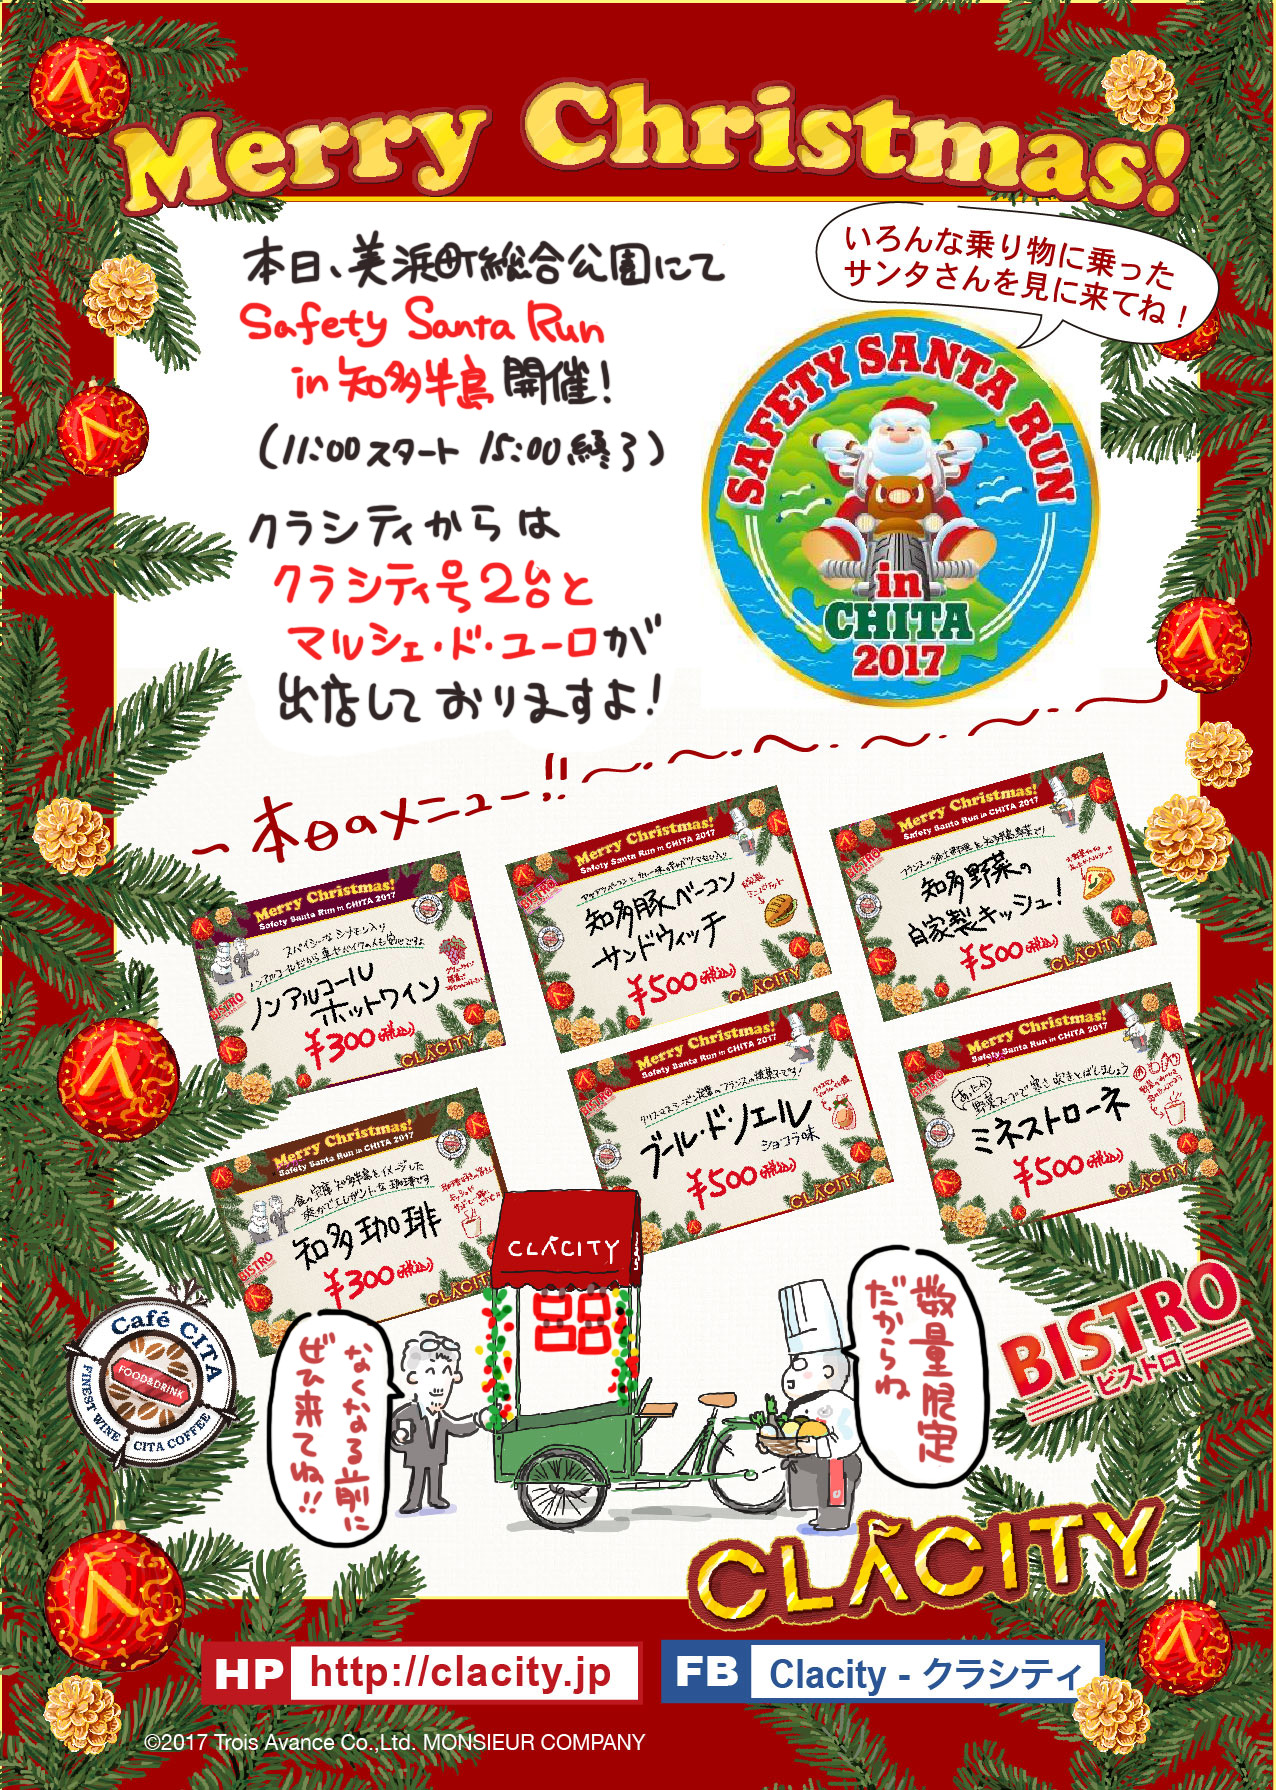 Safety Santa Run in 知多半島